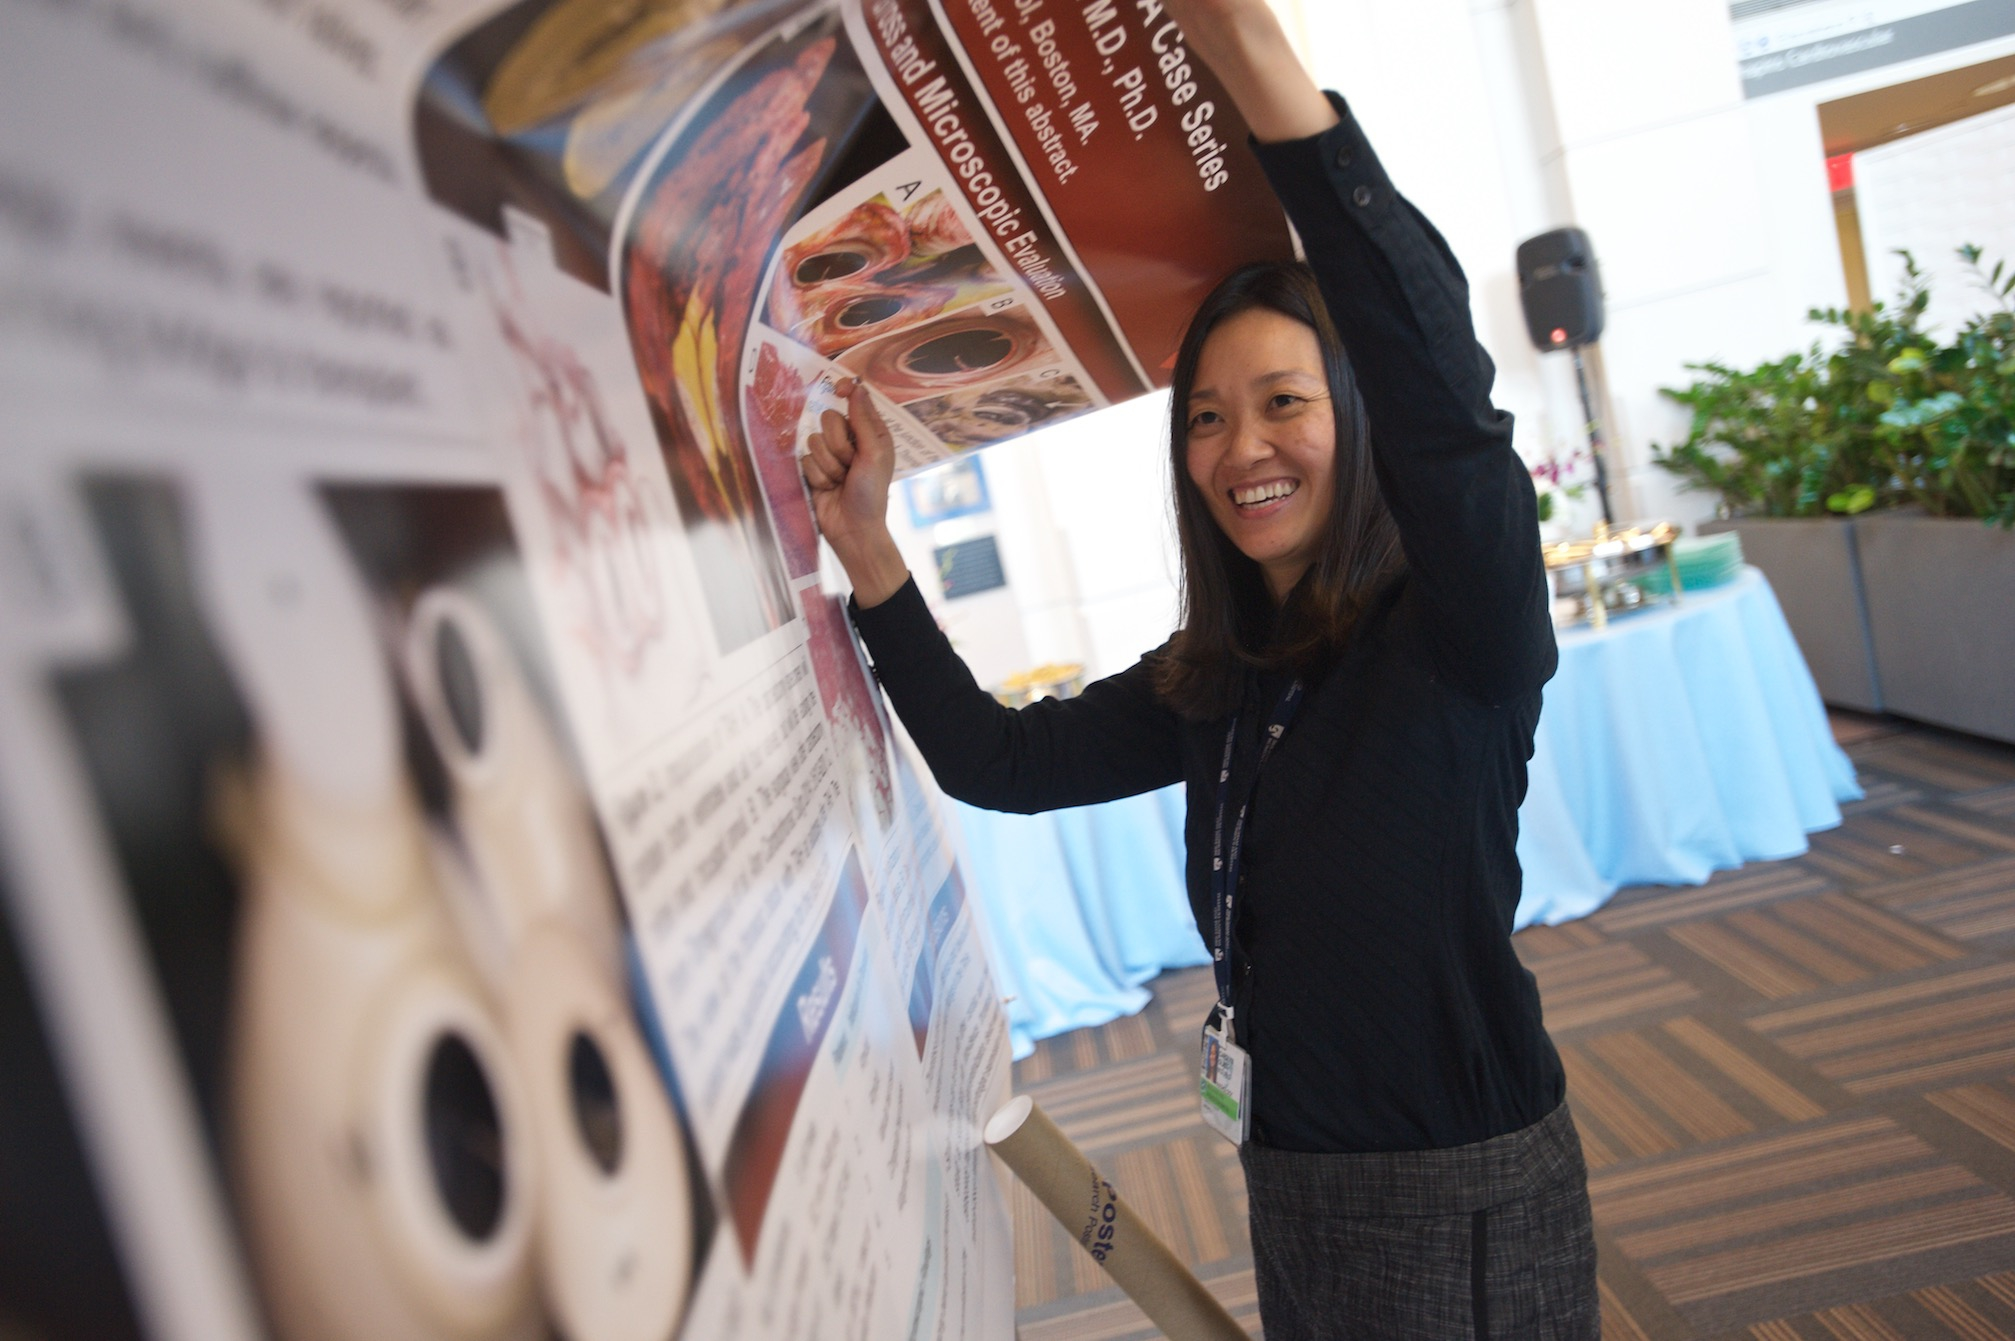 Pathology resident Carolyn Glass takes part in this year's annual research celebration.